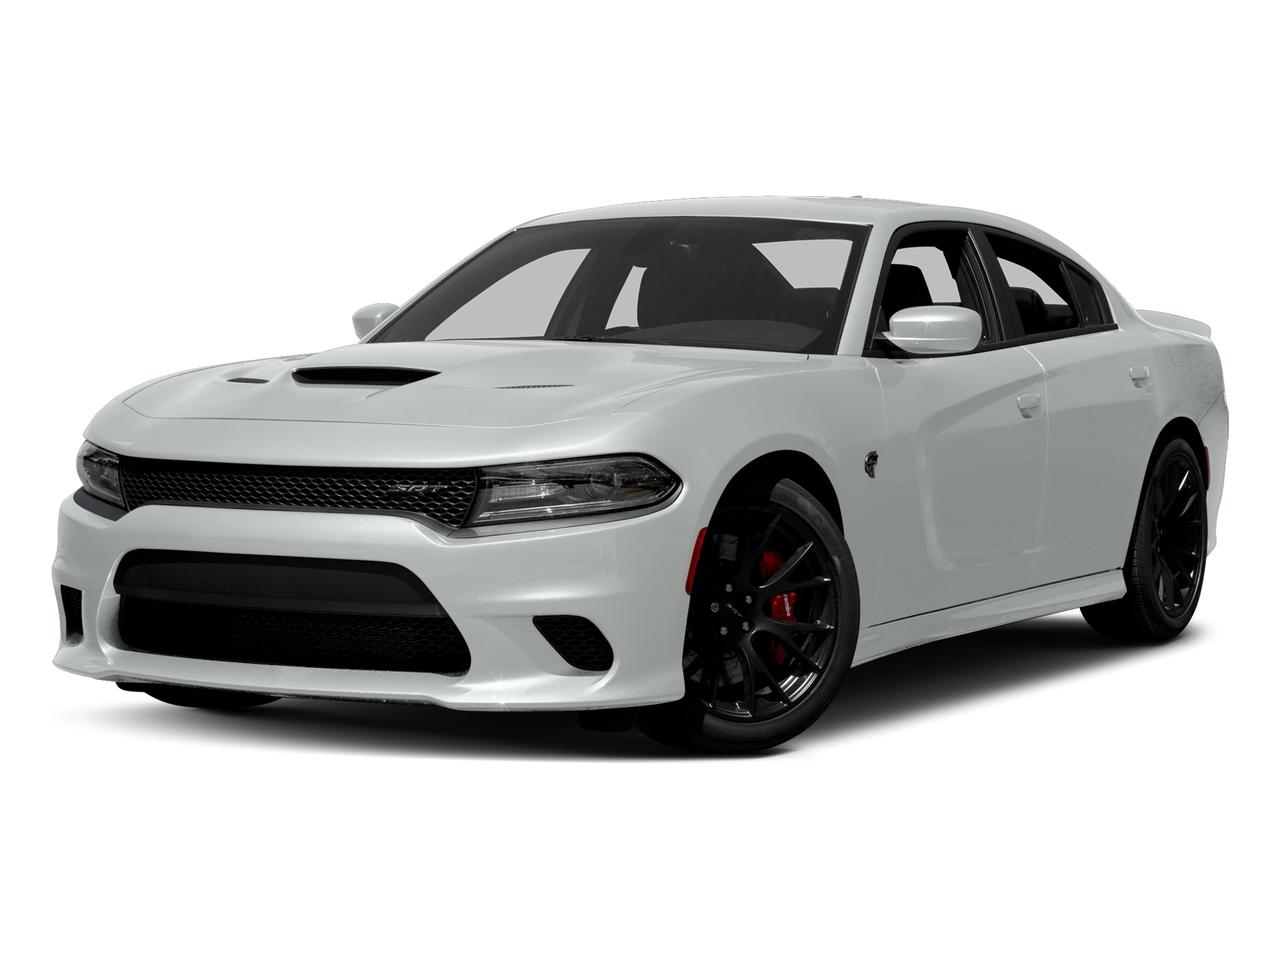 2017 Dodge Charger Vehicle Photo in Colorado Springs, CO 80905